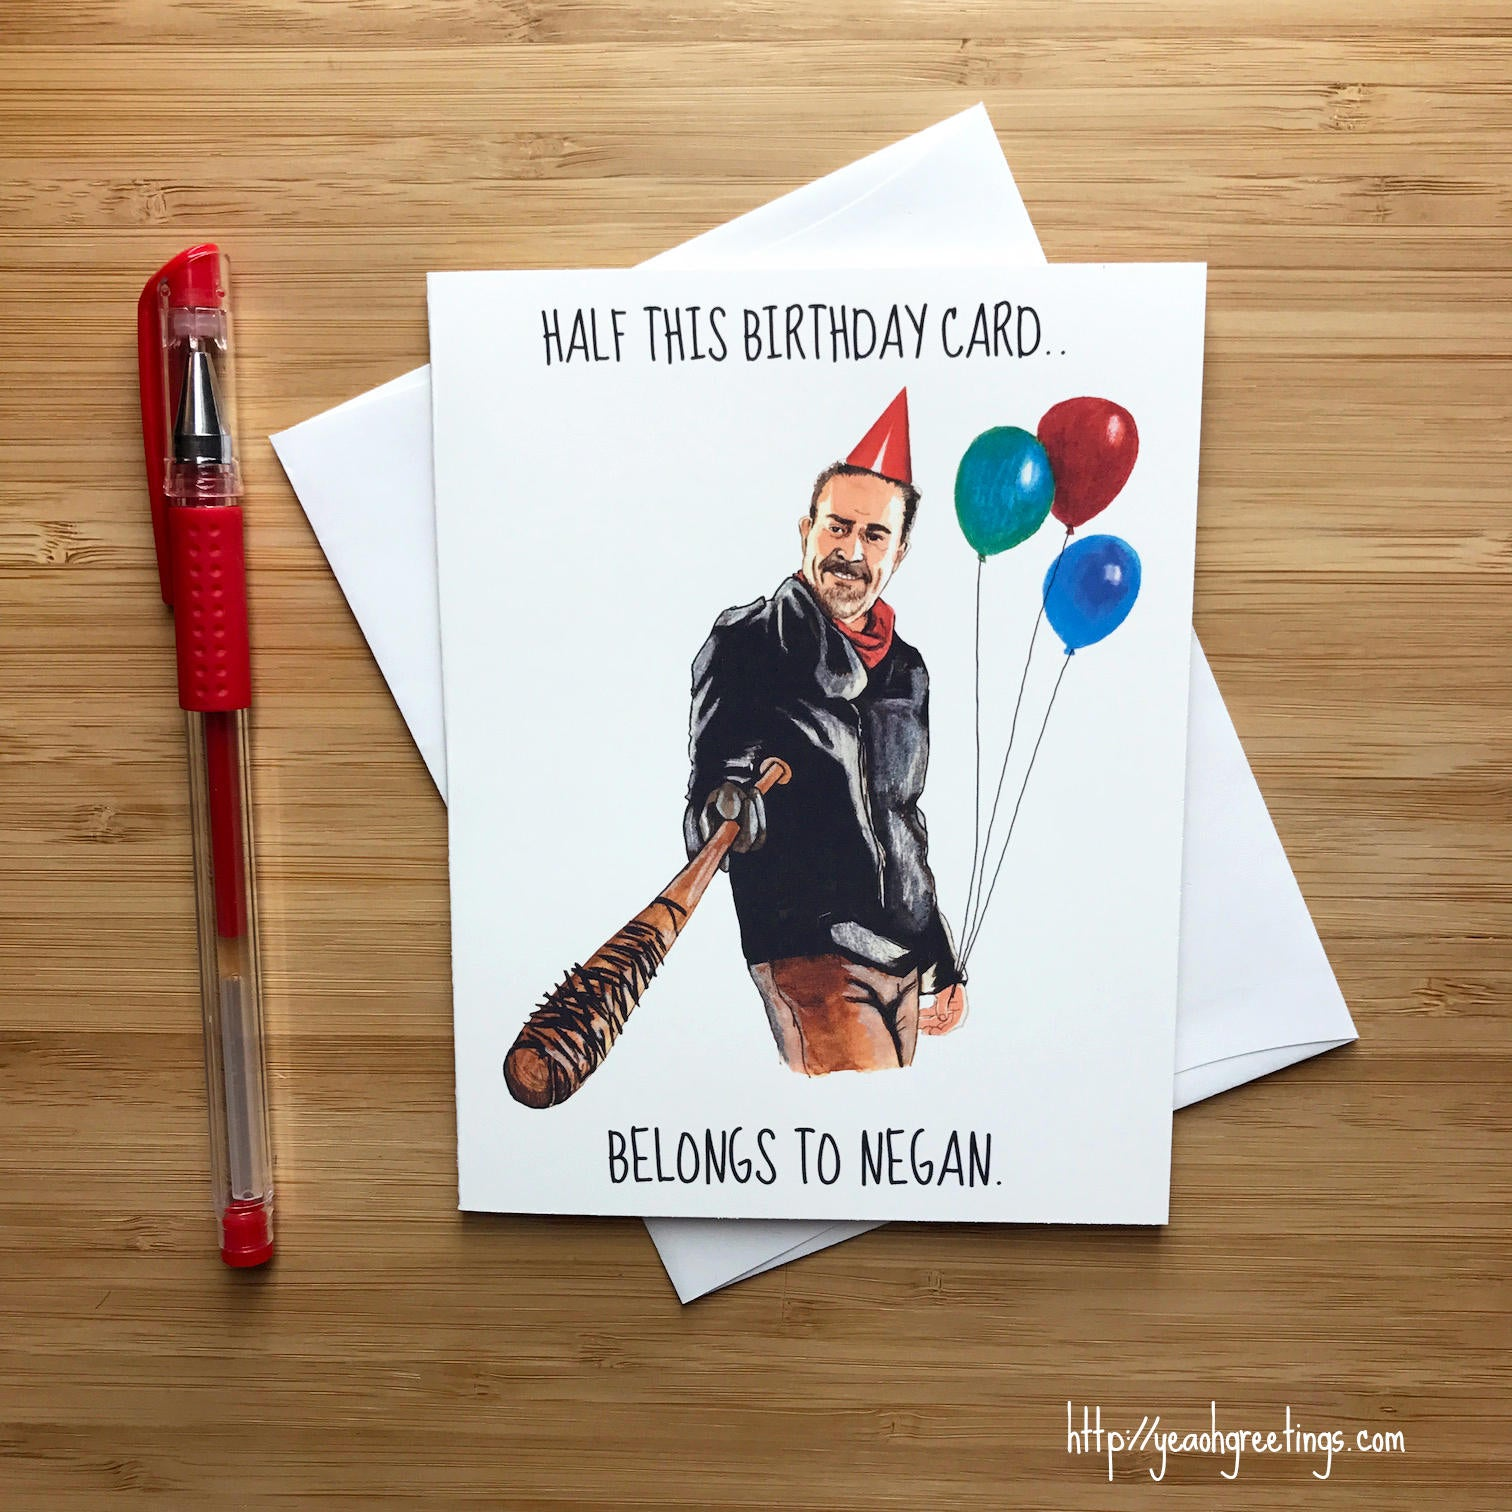 Negan birthday card walking dead zombie apocalypse zombie gift negan walking dead birthday card m4hsunfo